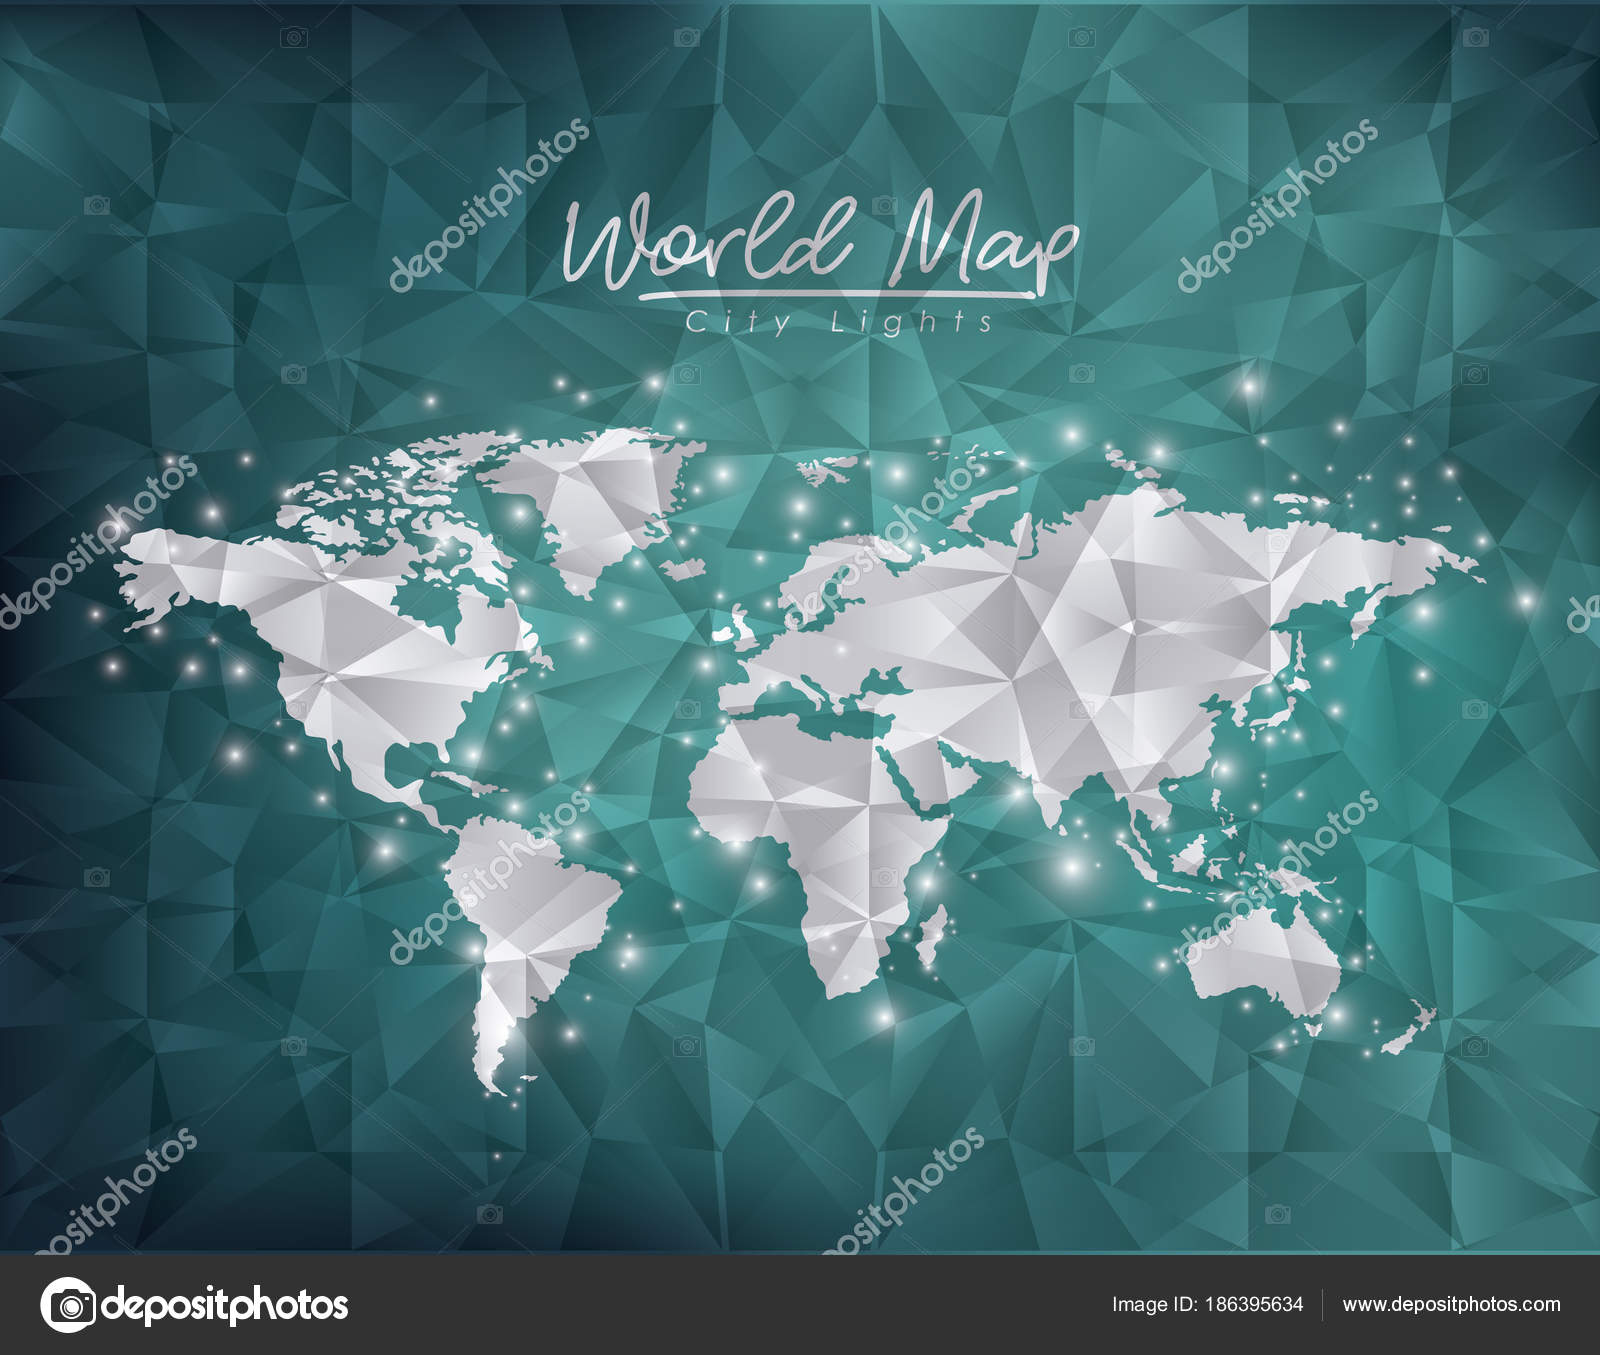 World map city lights in green degraded and polygon shape background world map city lights in green degraded and polygon shape background vector illustration vector by grgroupstock gumiabroncs Image collections